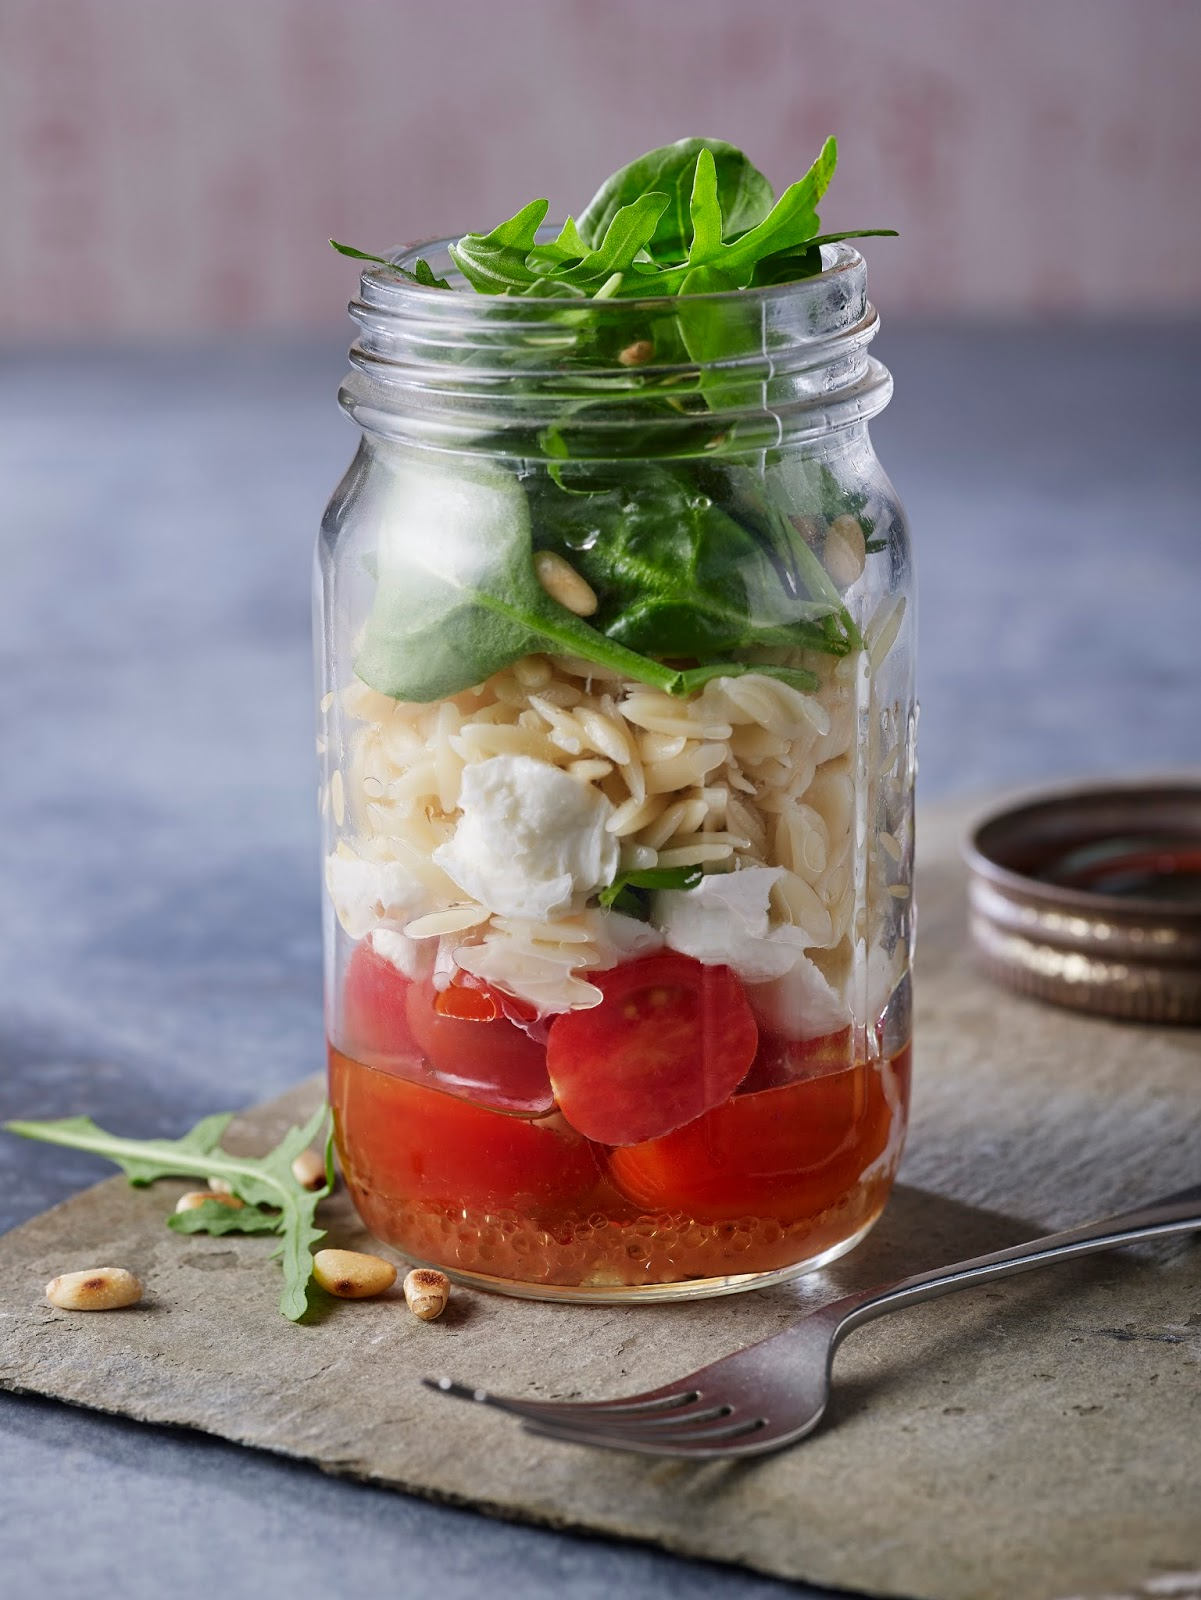 How To Make An Italian Orzo Pasta Mason Jar Salad